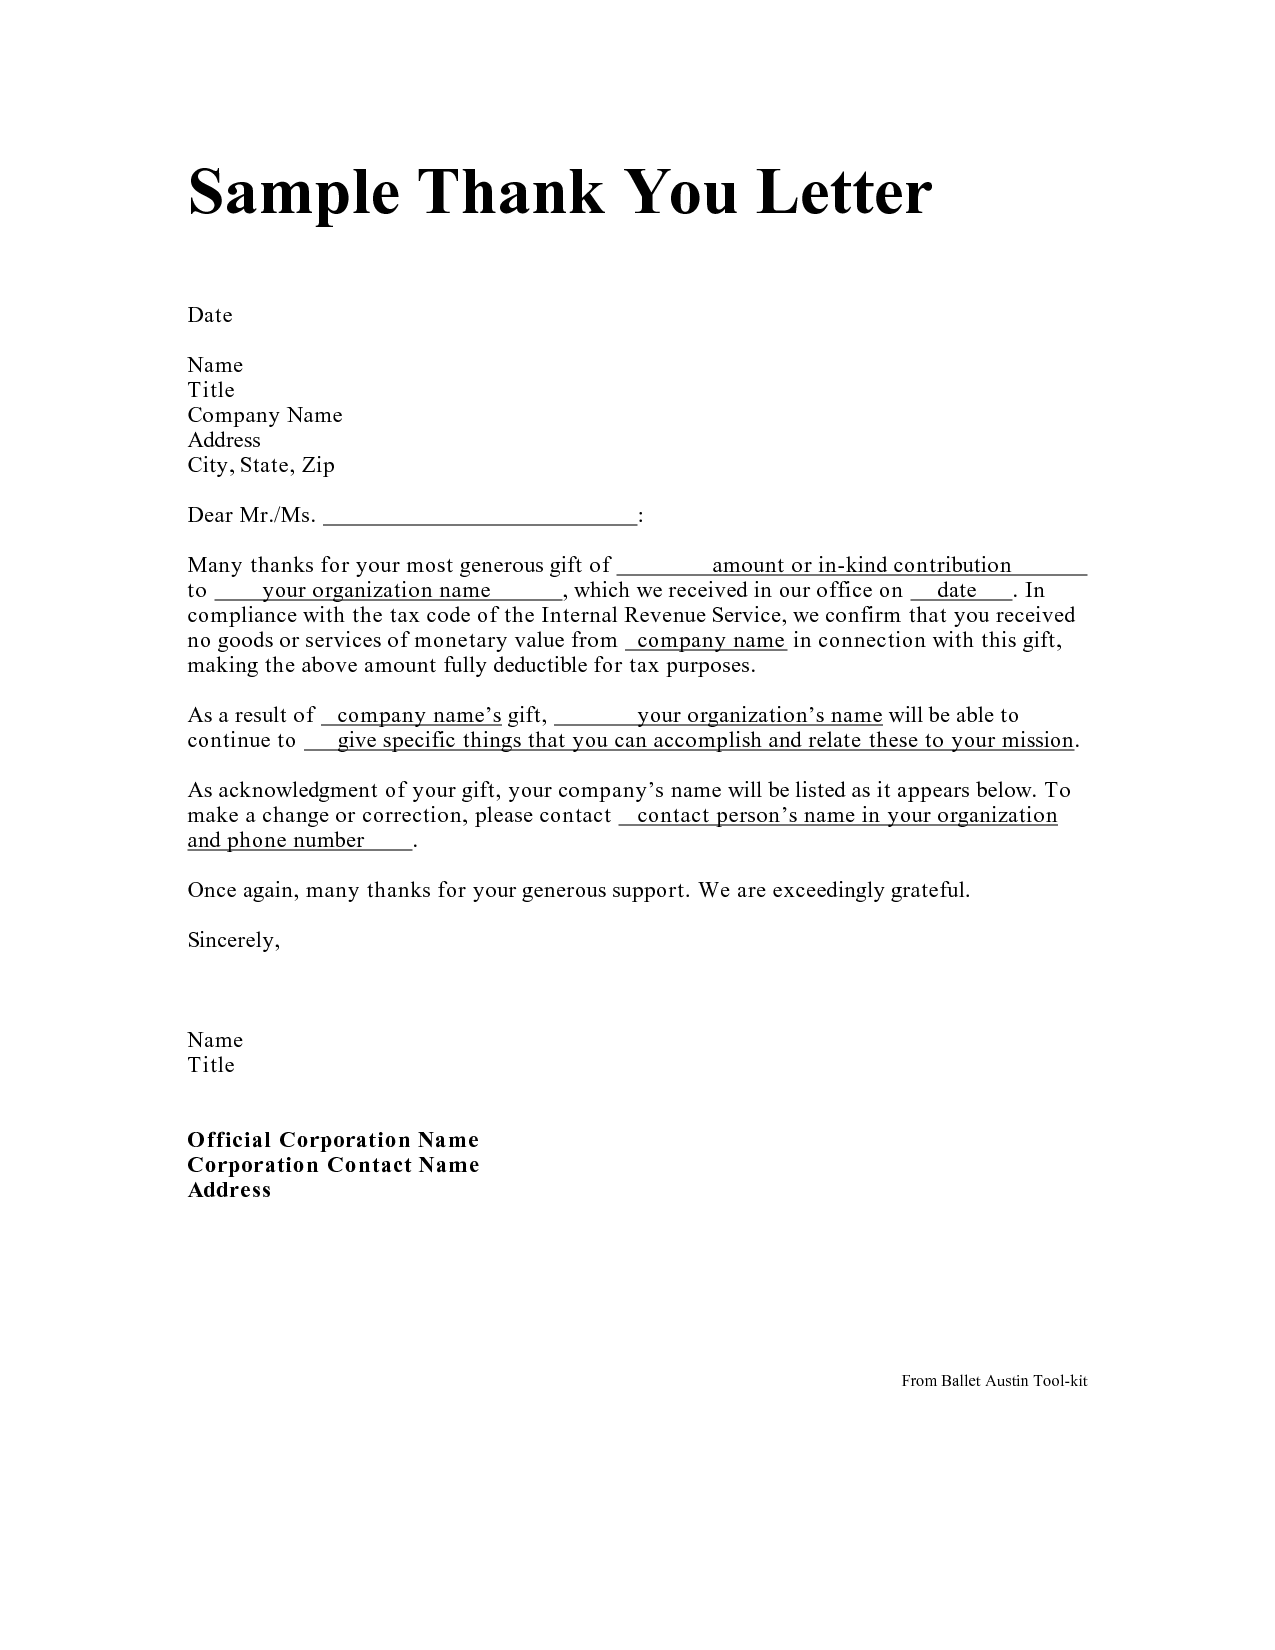 Thank You Sample Letter from i.pinimg.com